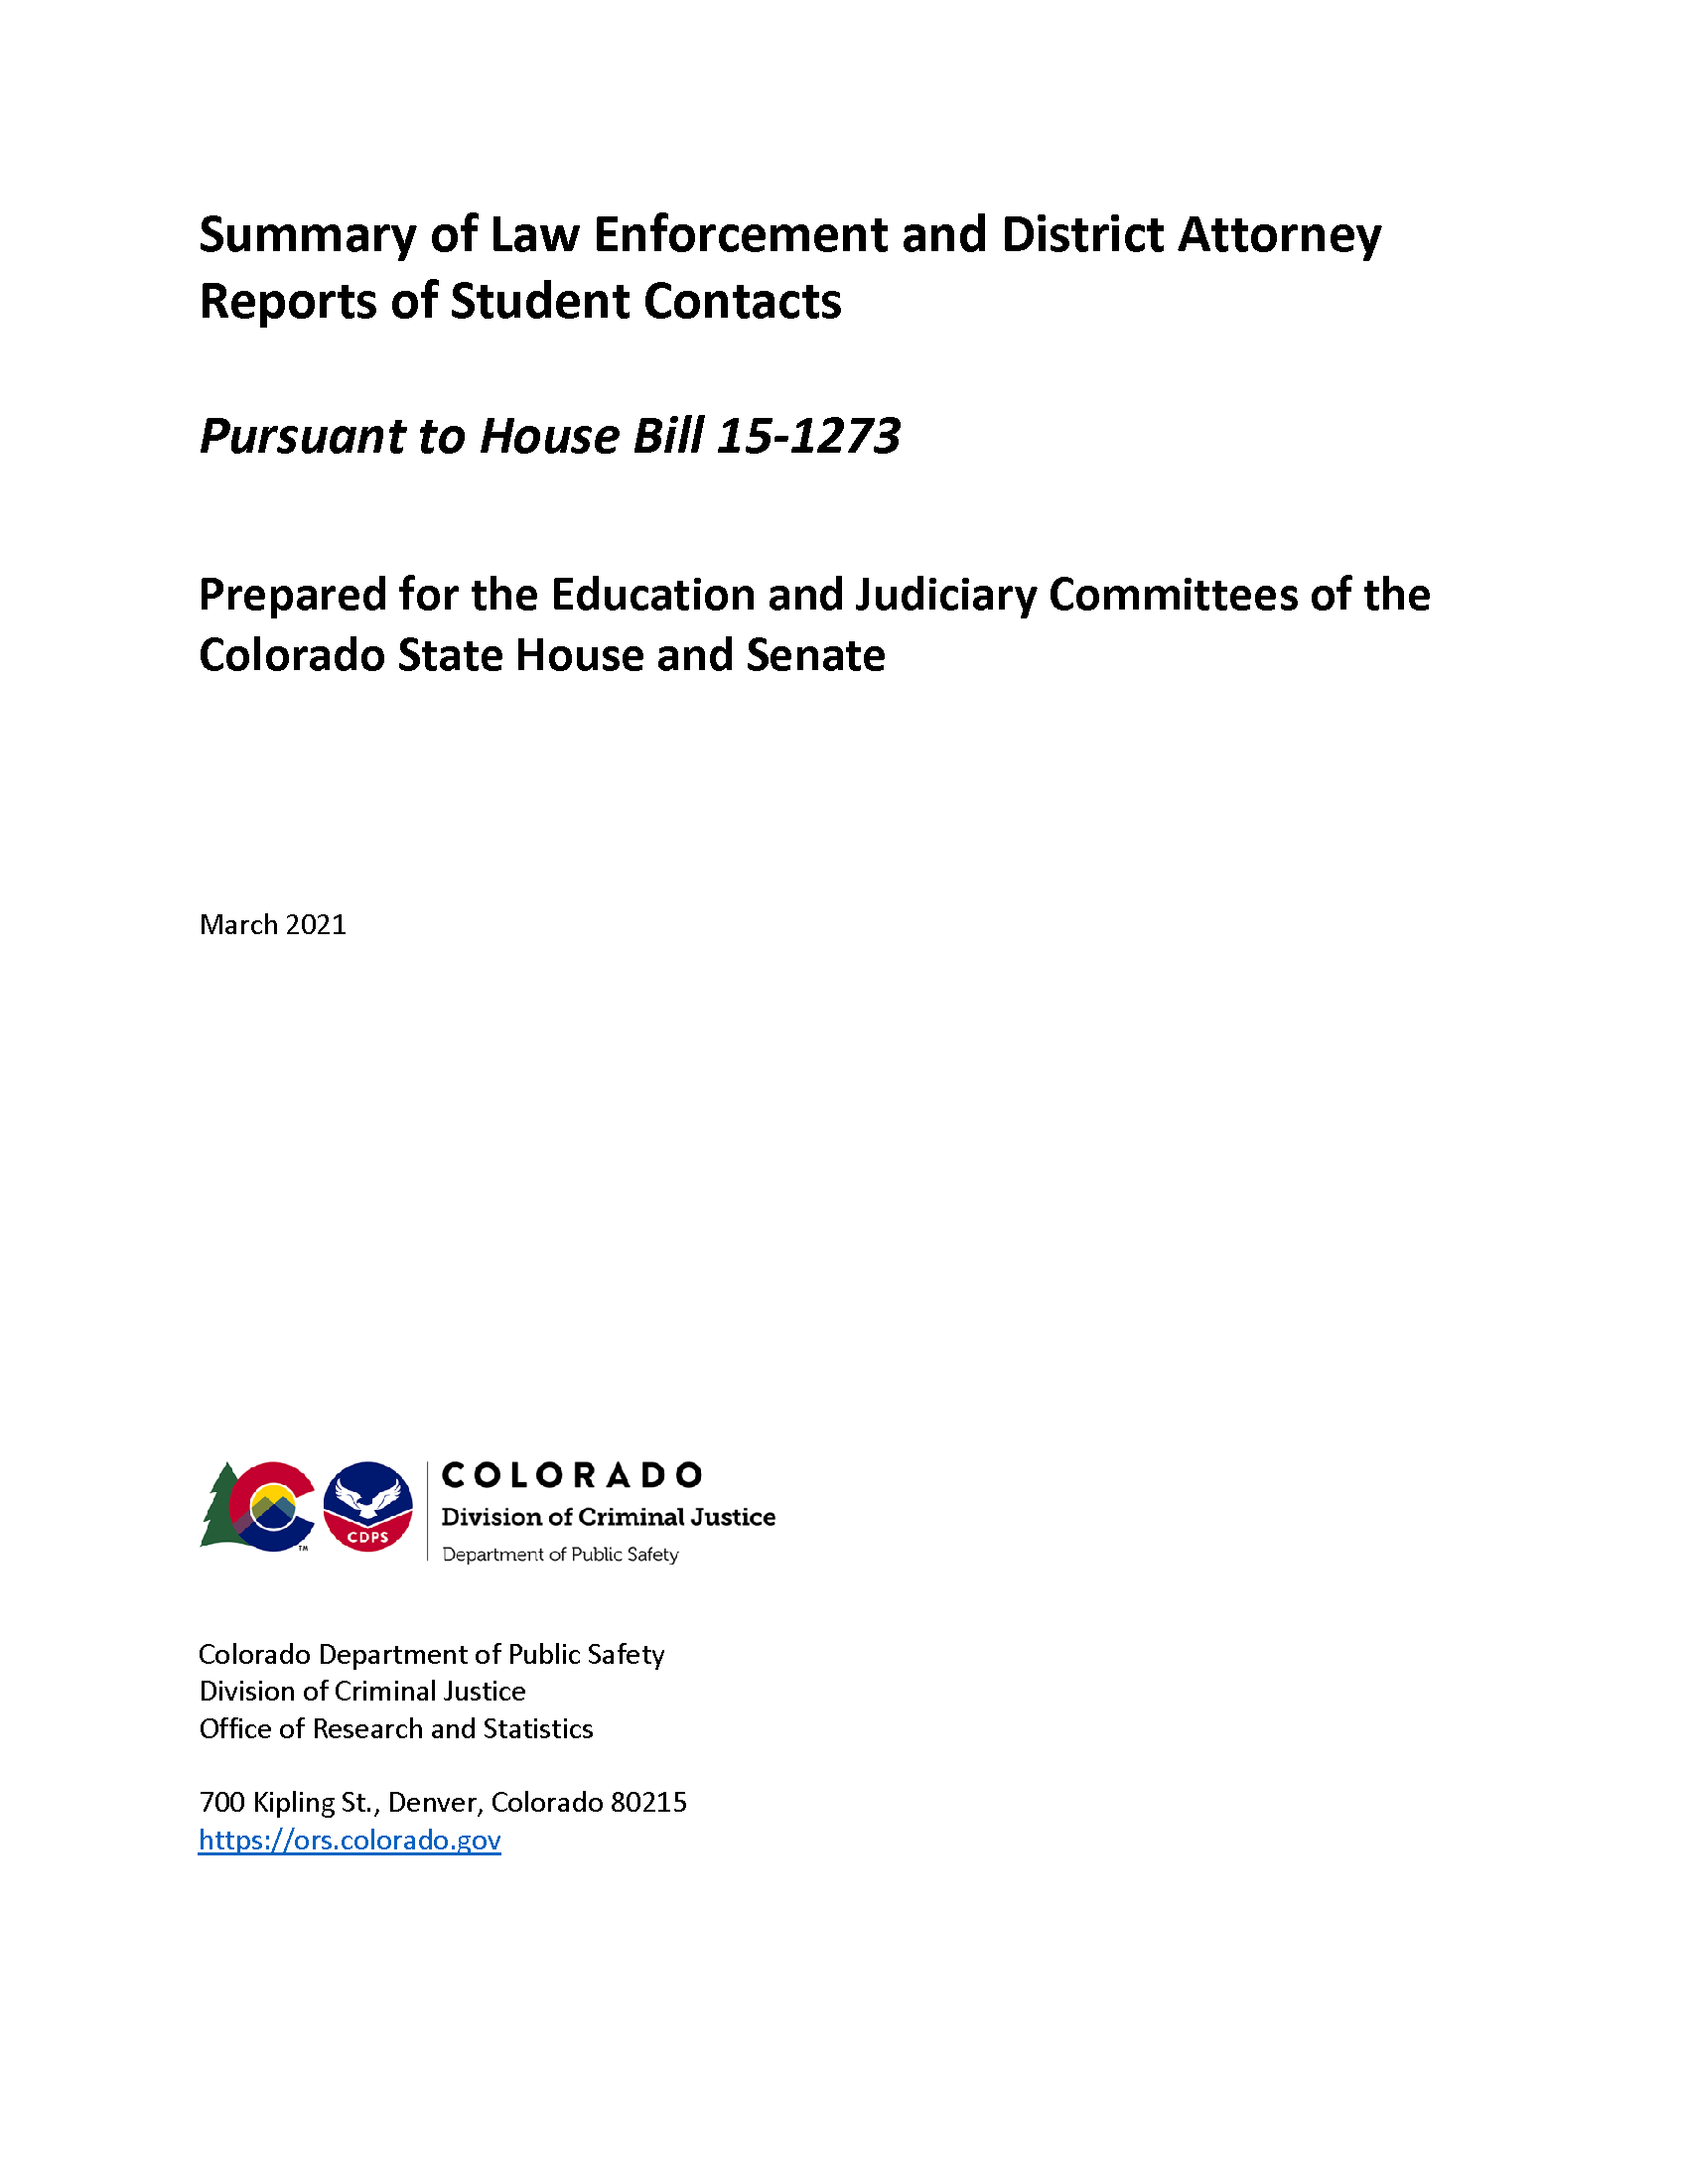 Summary of Law Enforcement and District Attorney Reports of Student Contacts (March 2021)